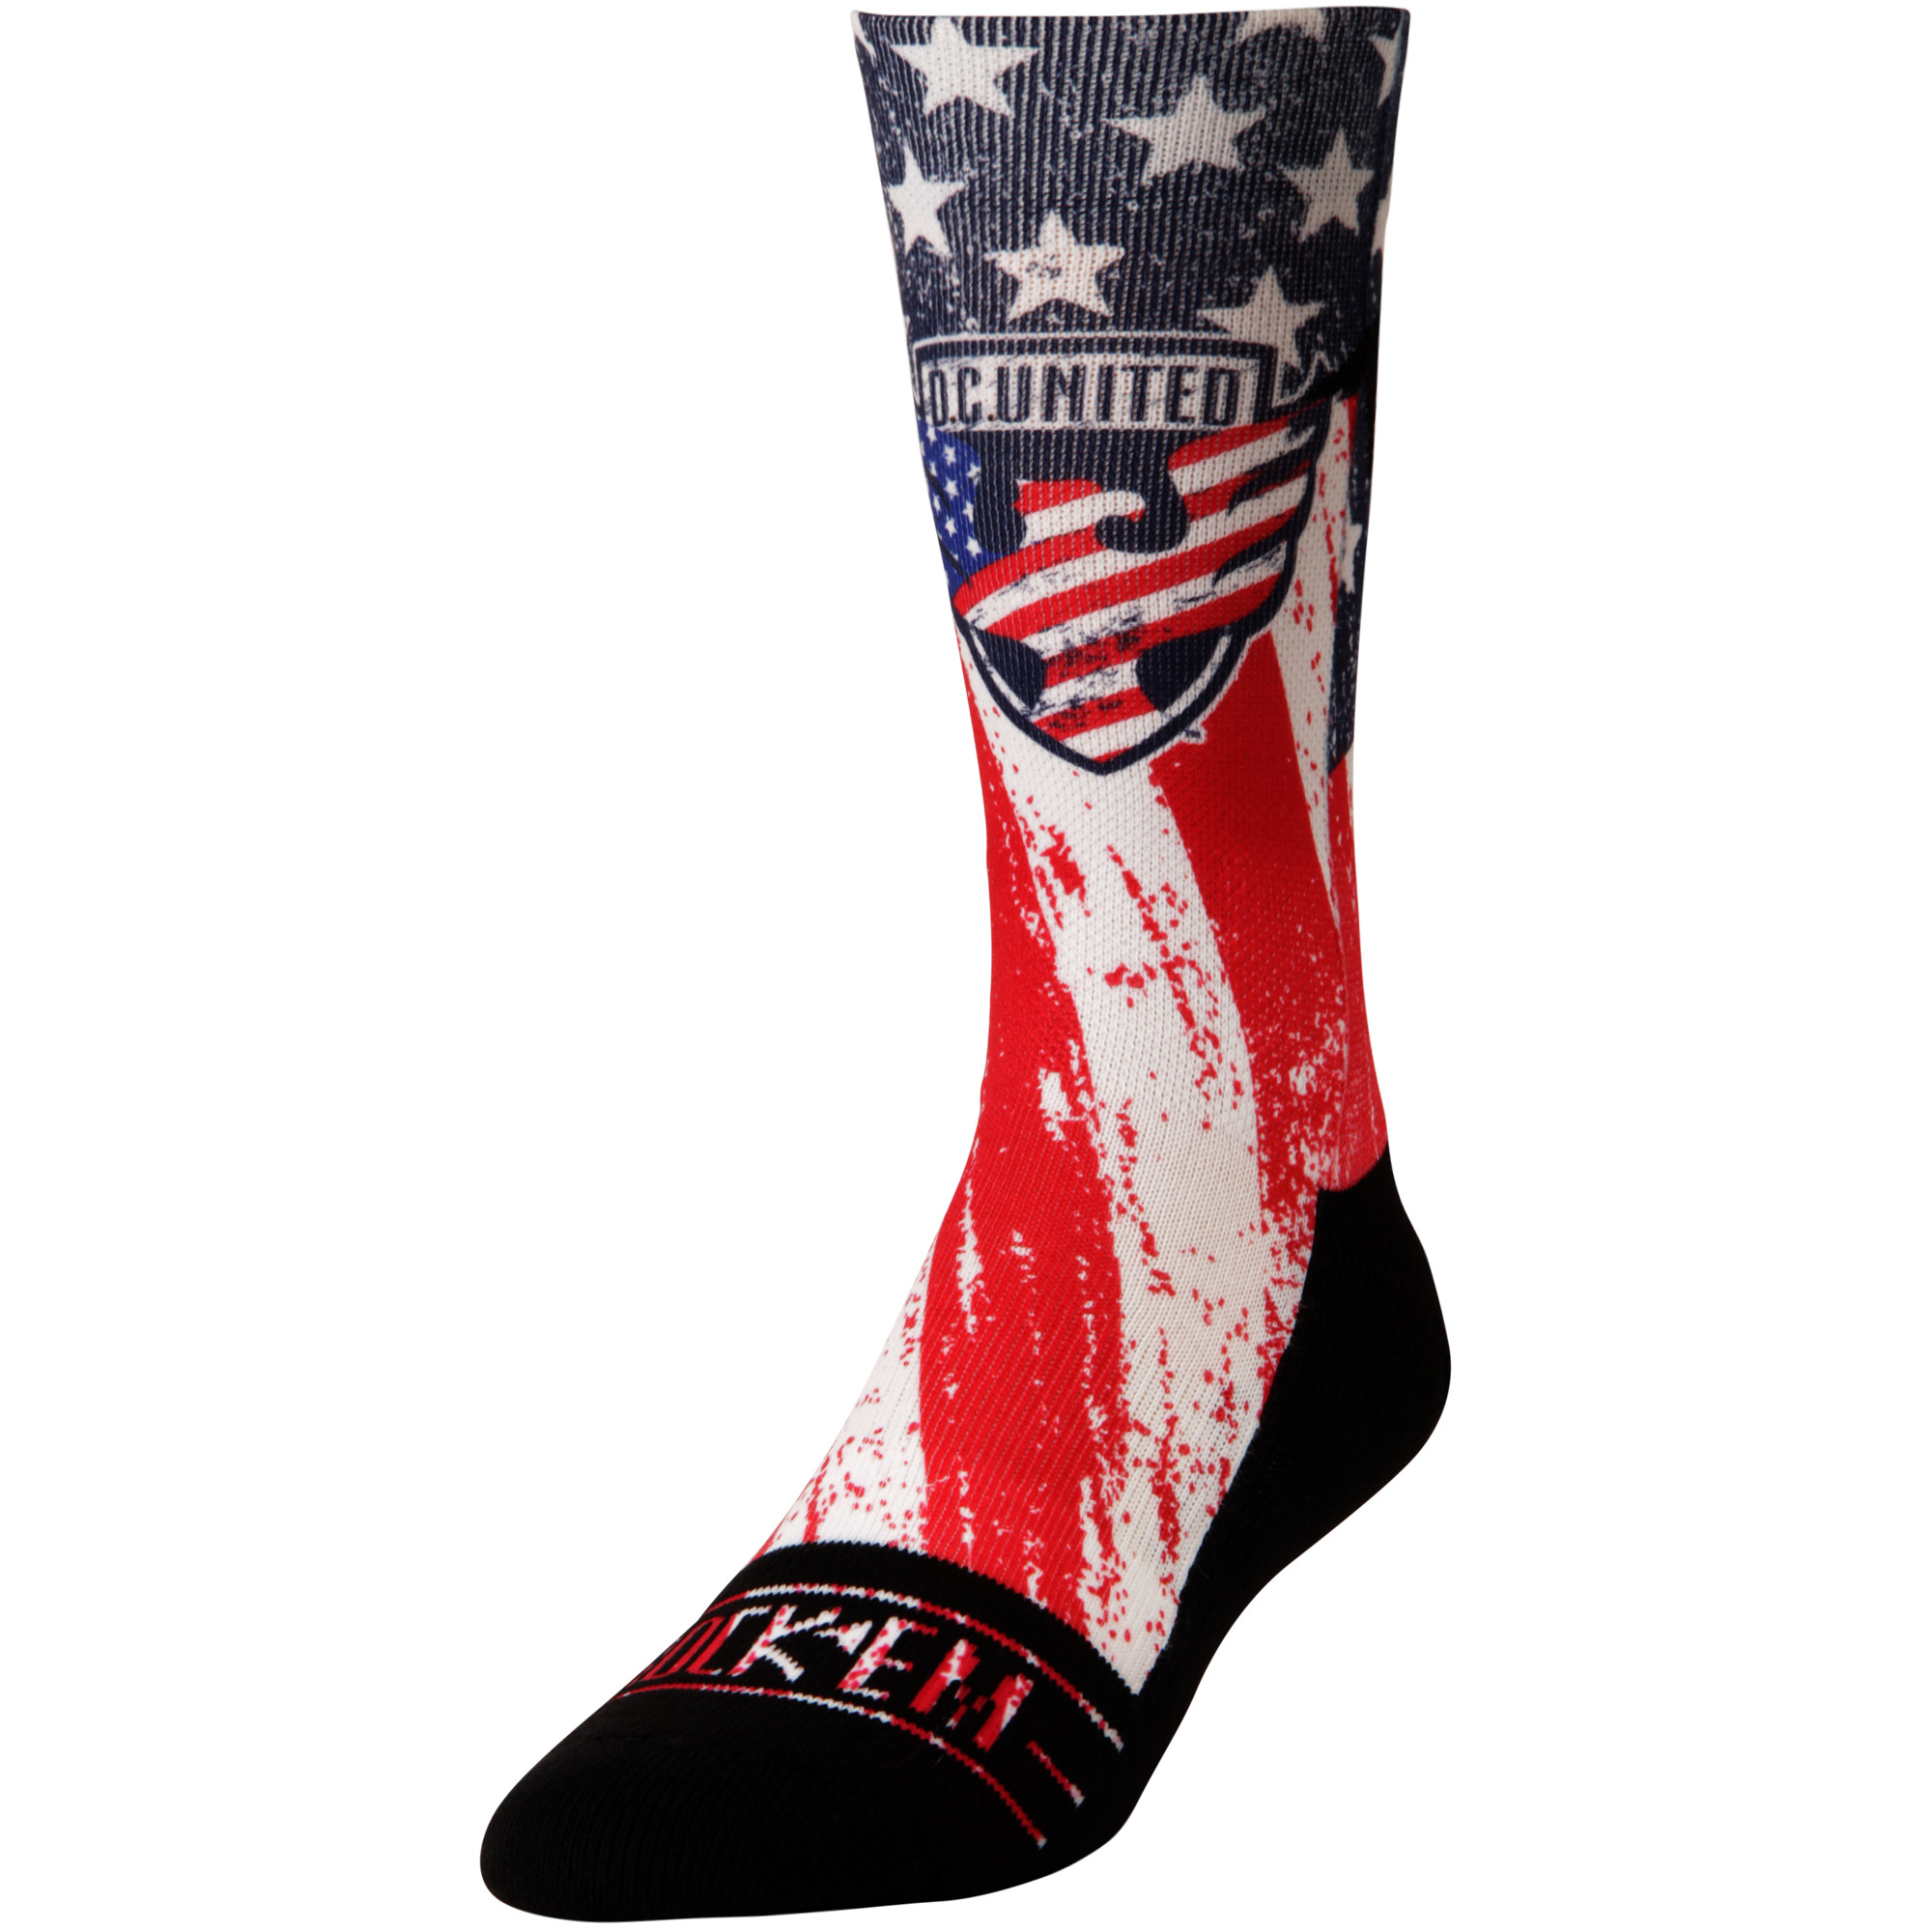 D.C. United For Club and Country Socks - Blue